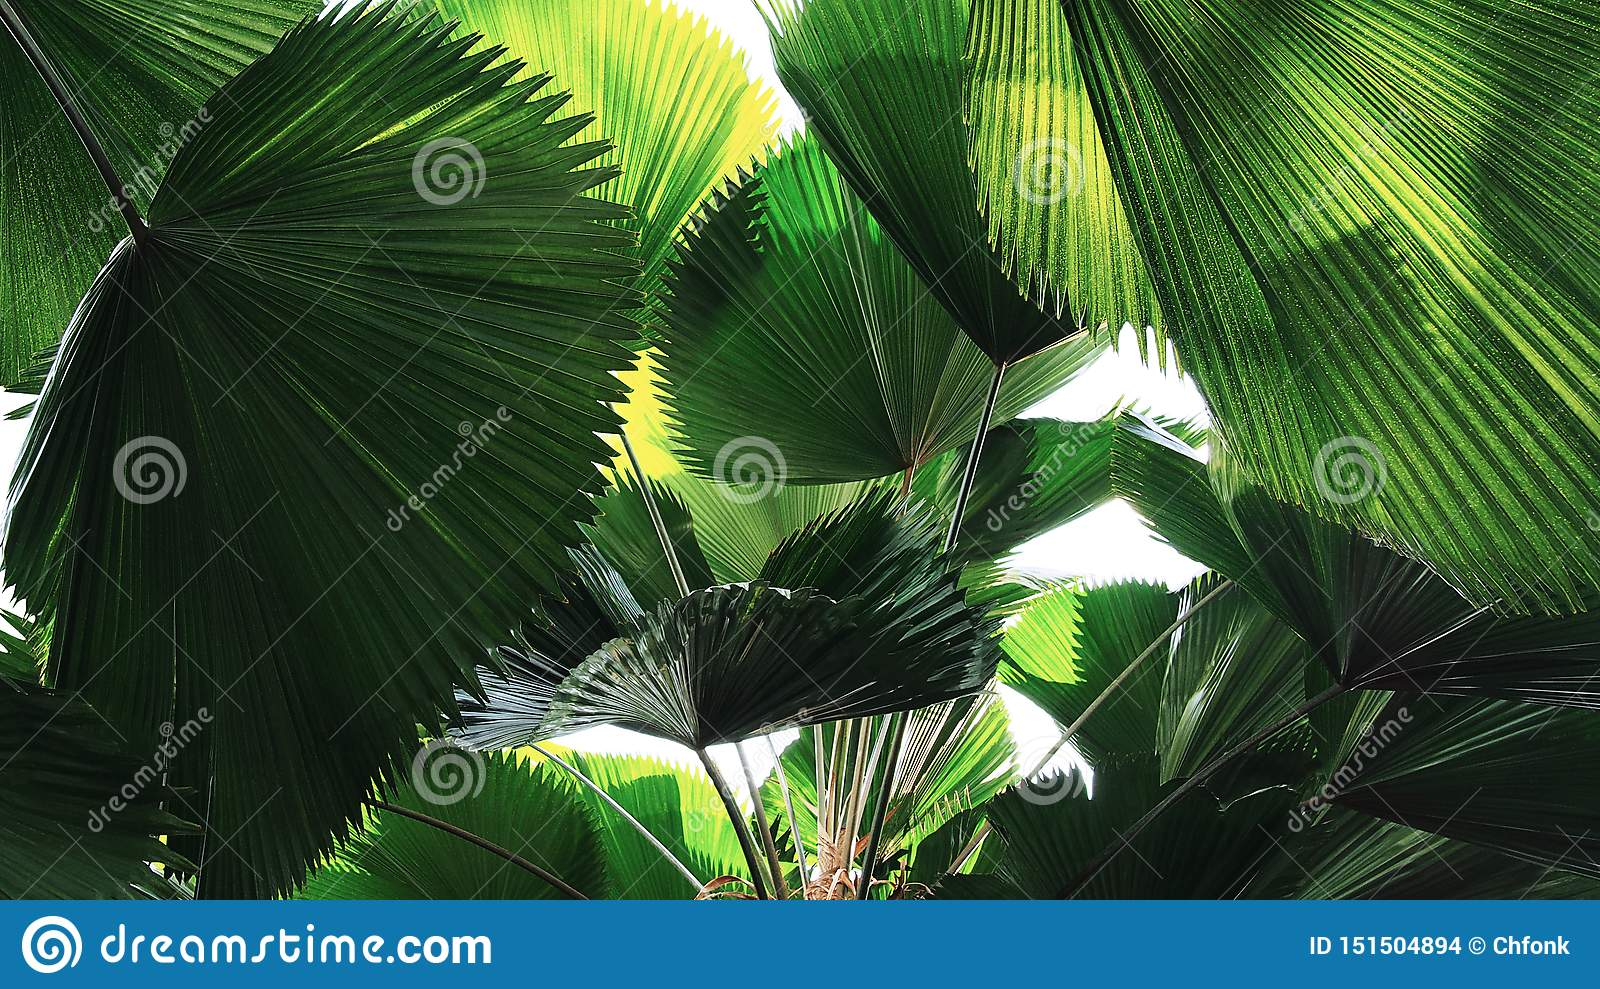 Tropical leaves rainforest fan palm leaf pattern, abstract green nature background